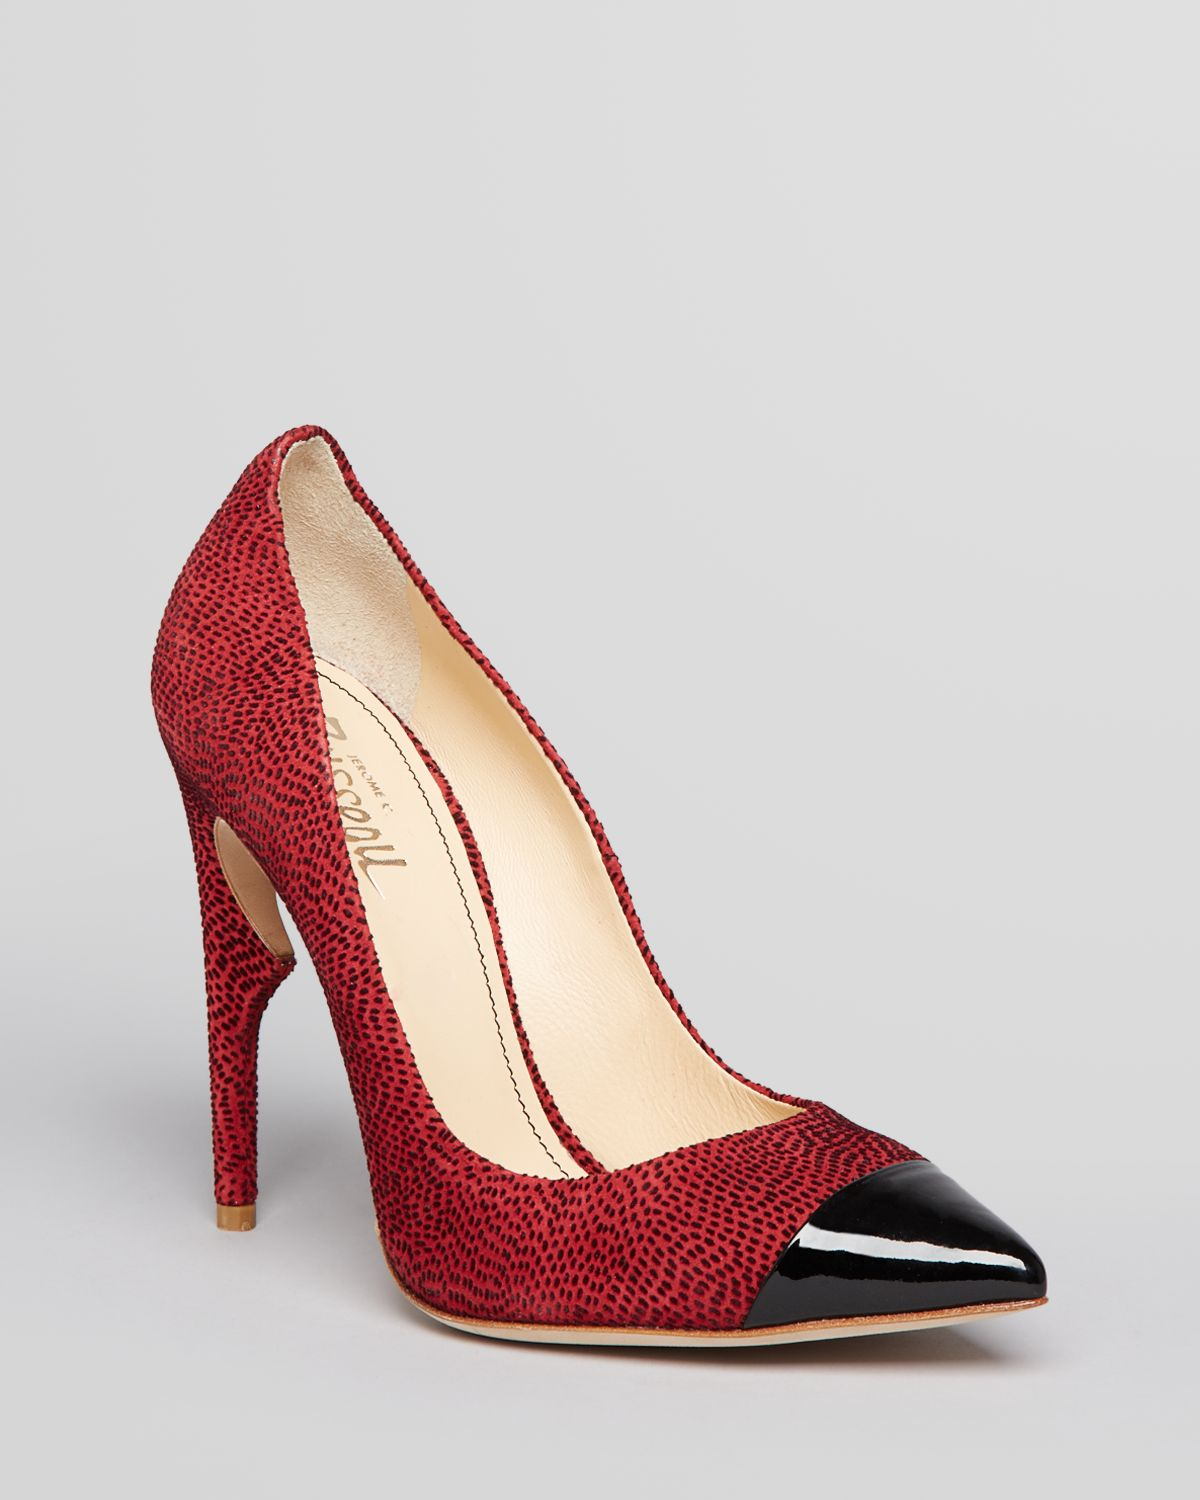 buy cheap genuine with paypal free shipping Jerome C. Rousseau Multicolor Pointed-Toe Pumps prices for sale 2014 unisex for sale ZWUsmNt2z2